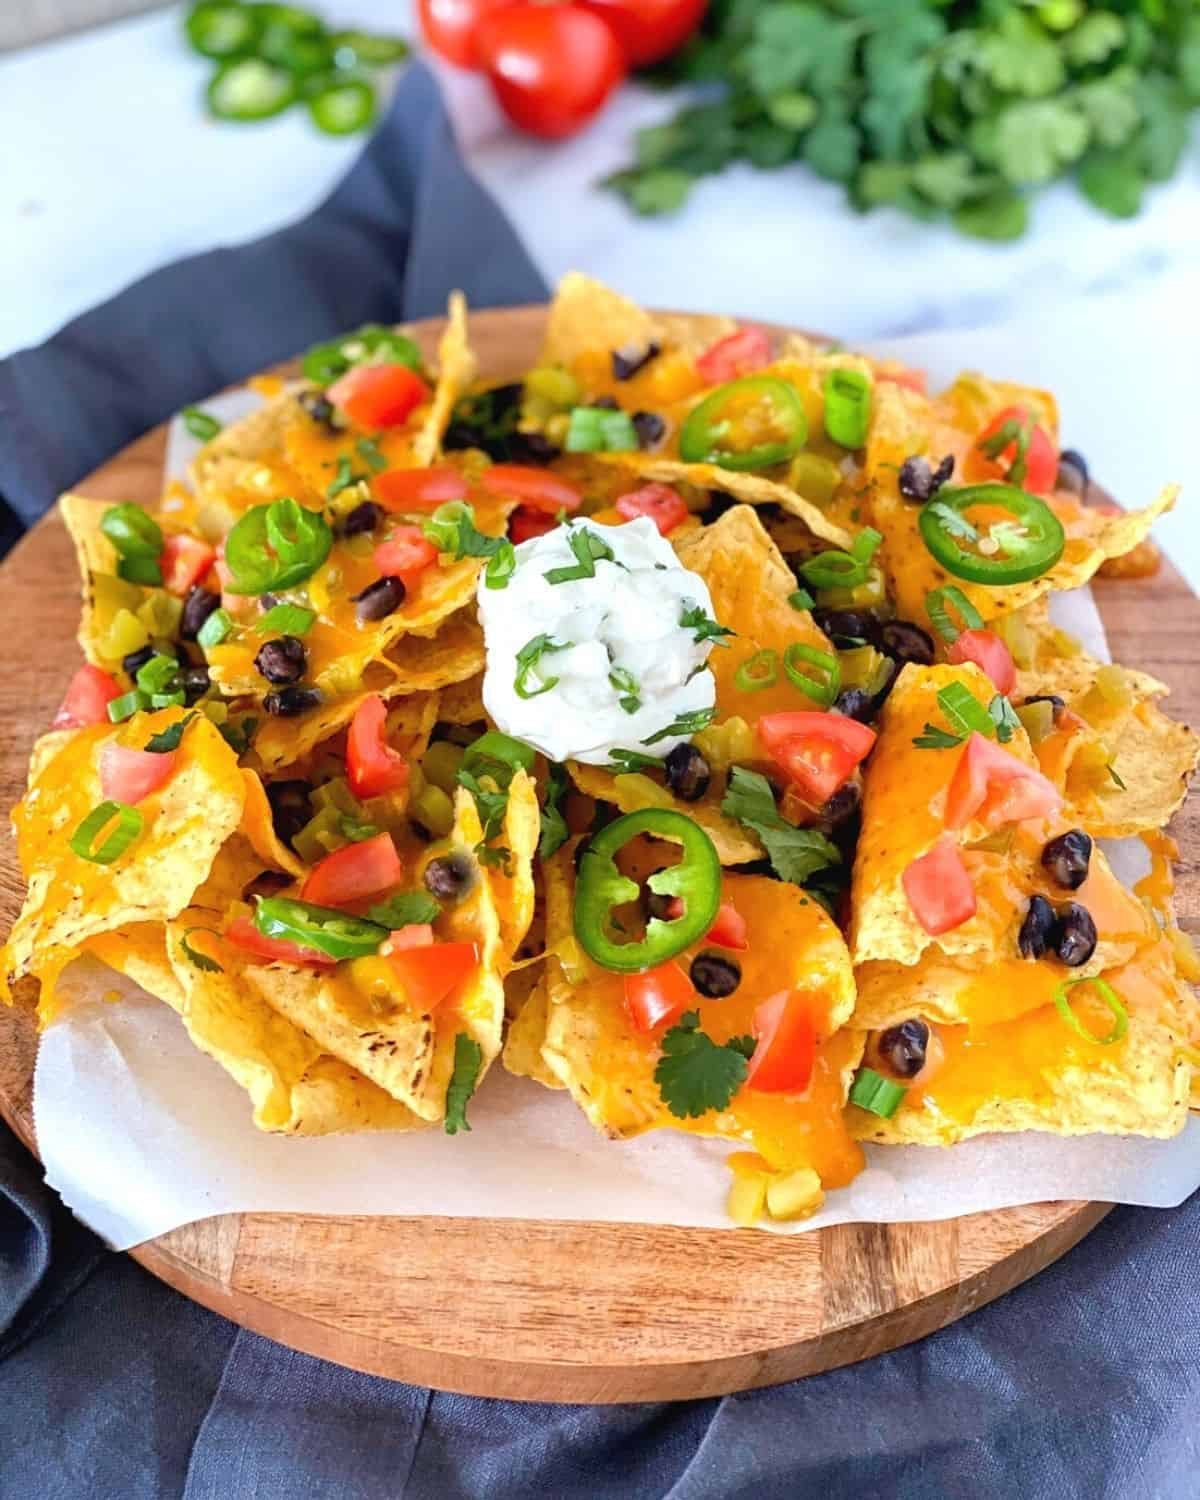 nachos air fried with cheese, tomatoes, jalapenos, beans and sour cream on a cutting board.